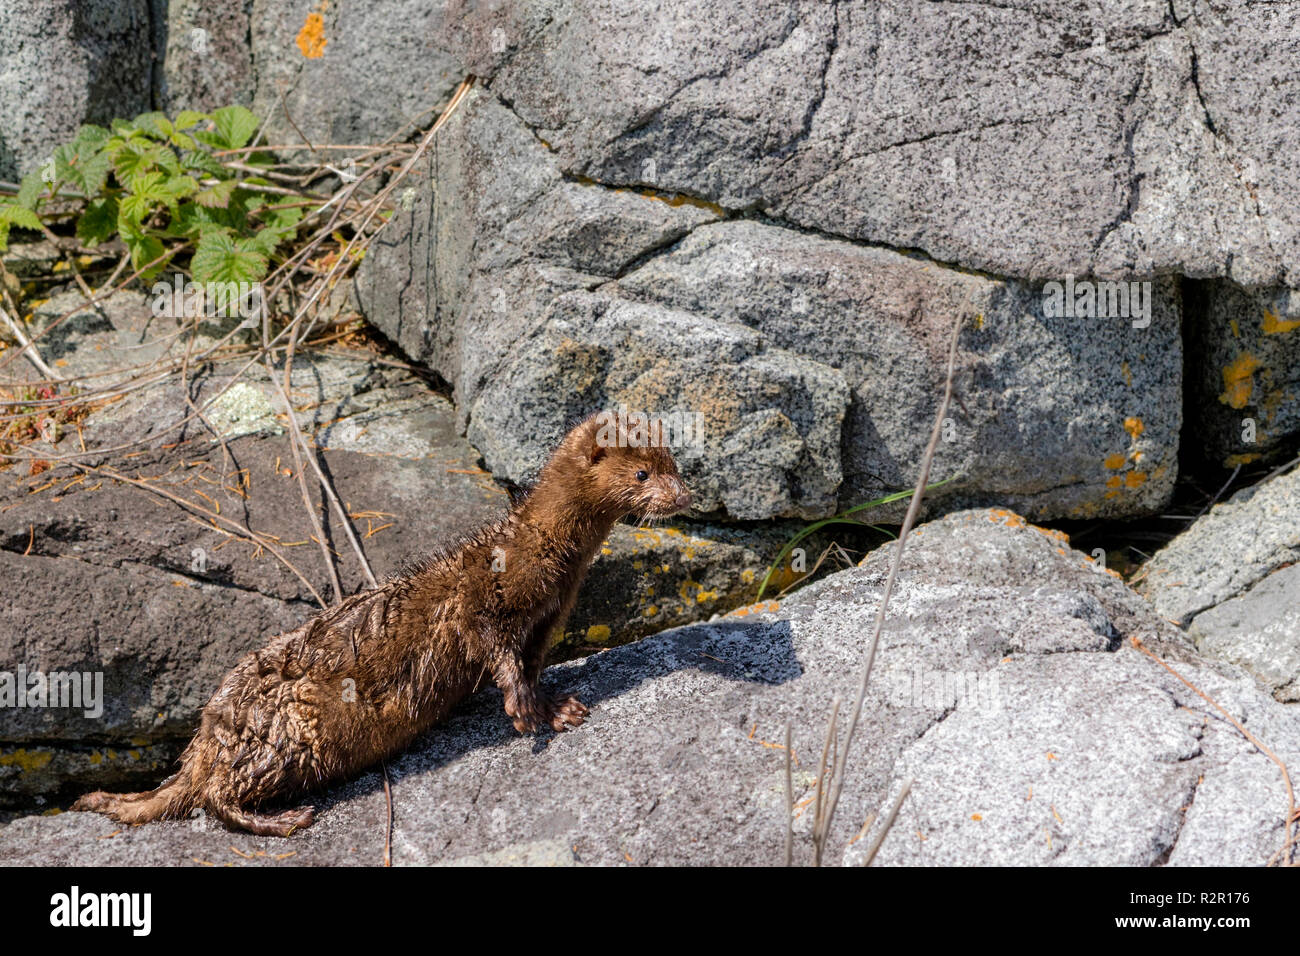 North American River Otter along a shoreline in Broughton Archipelago Provincial Marine Park, First Nations Territory, British Columbia, Canada - Stock Image